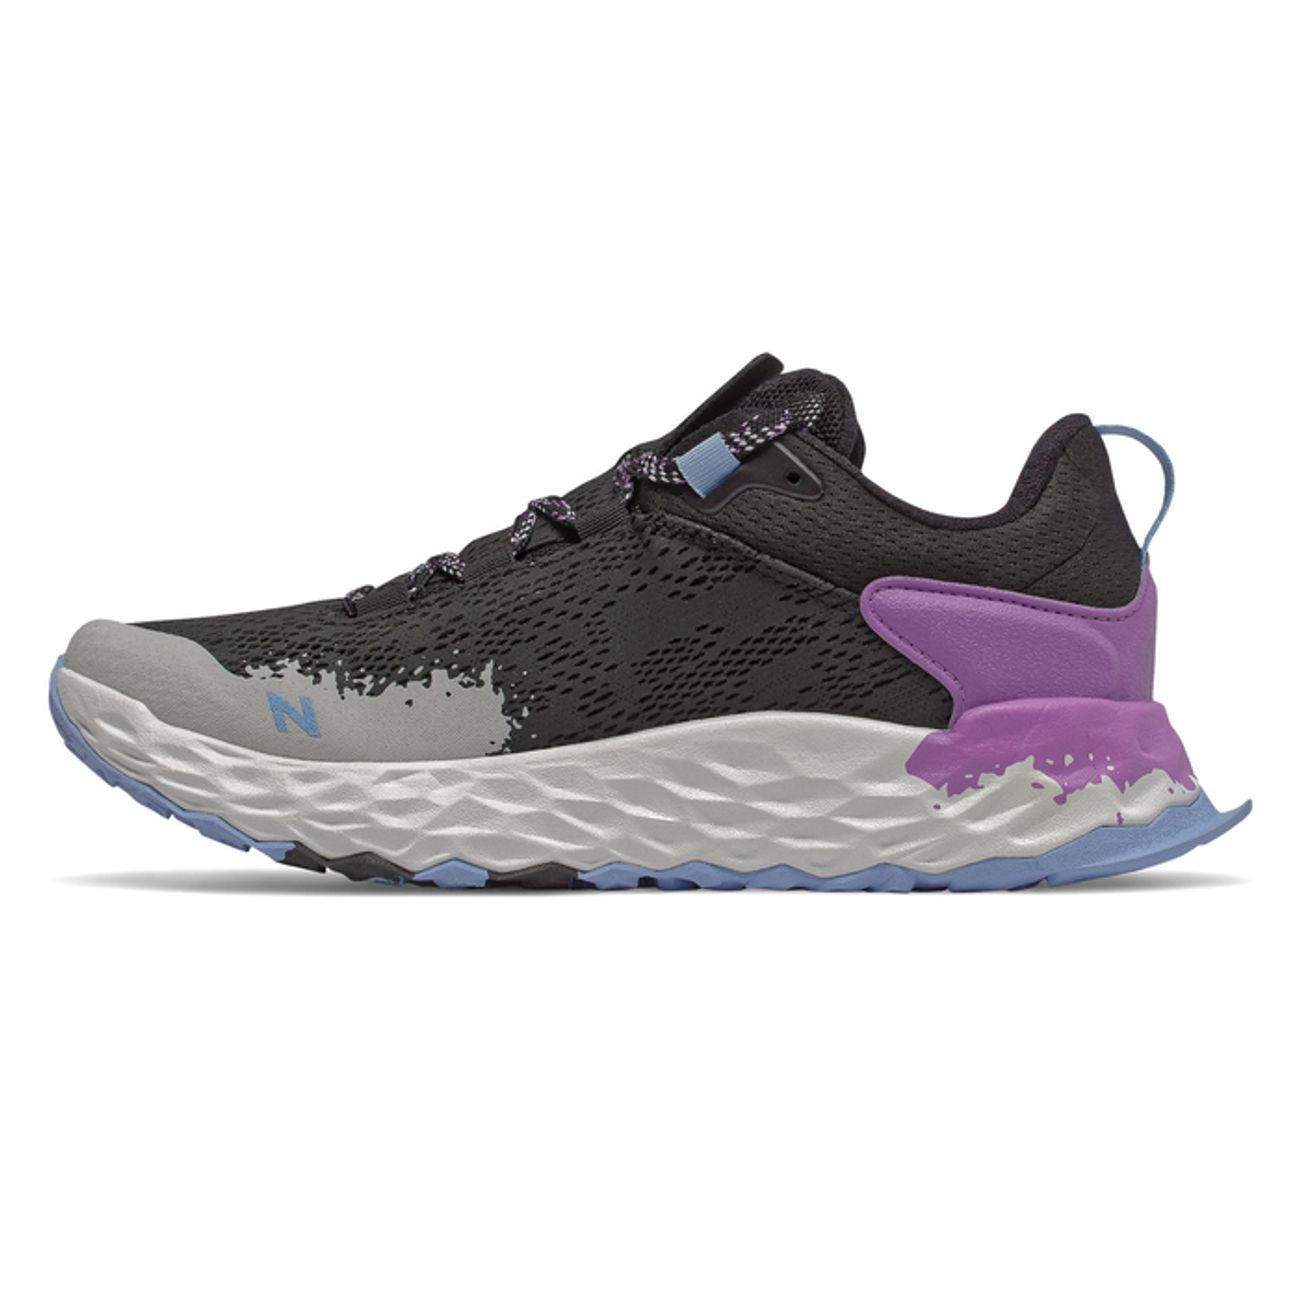 CHAUSSURES BASSES Trail femme NEW BALANCE HIERRO